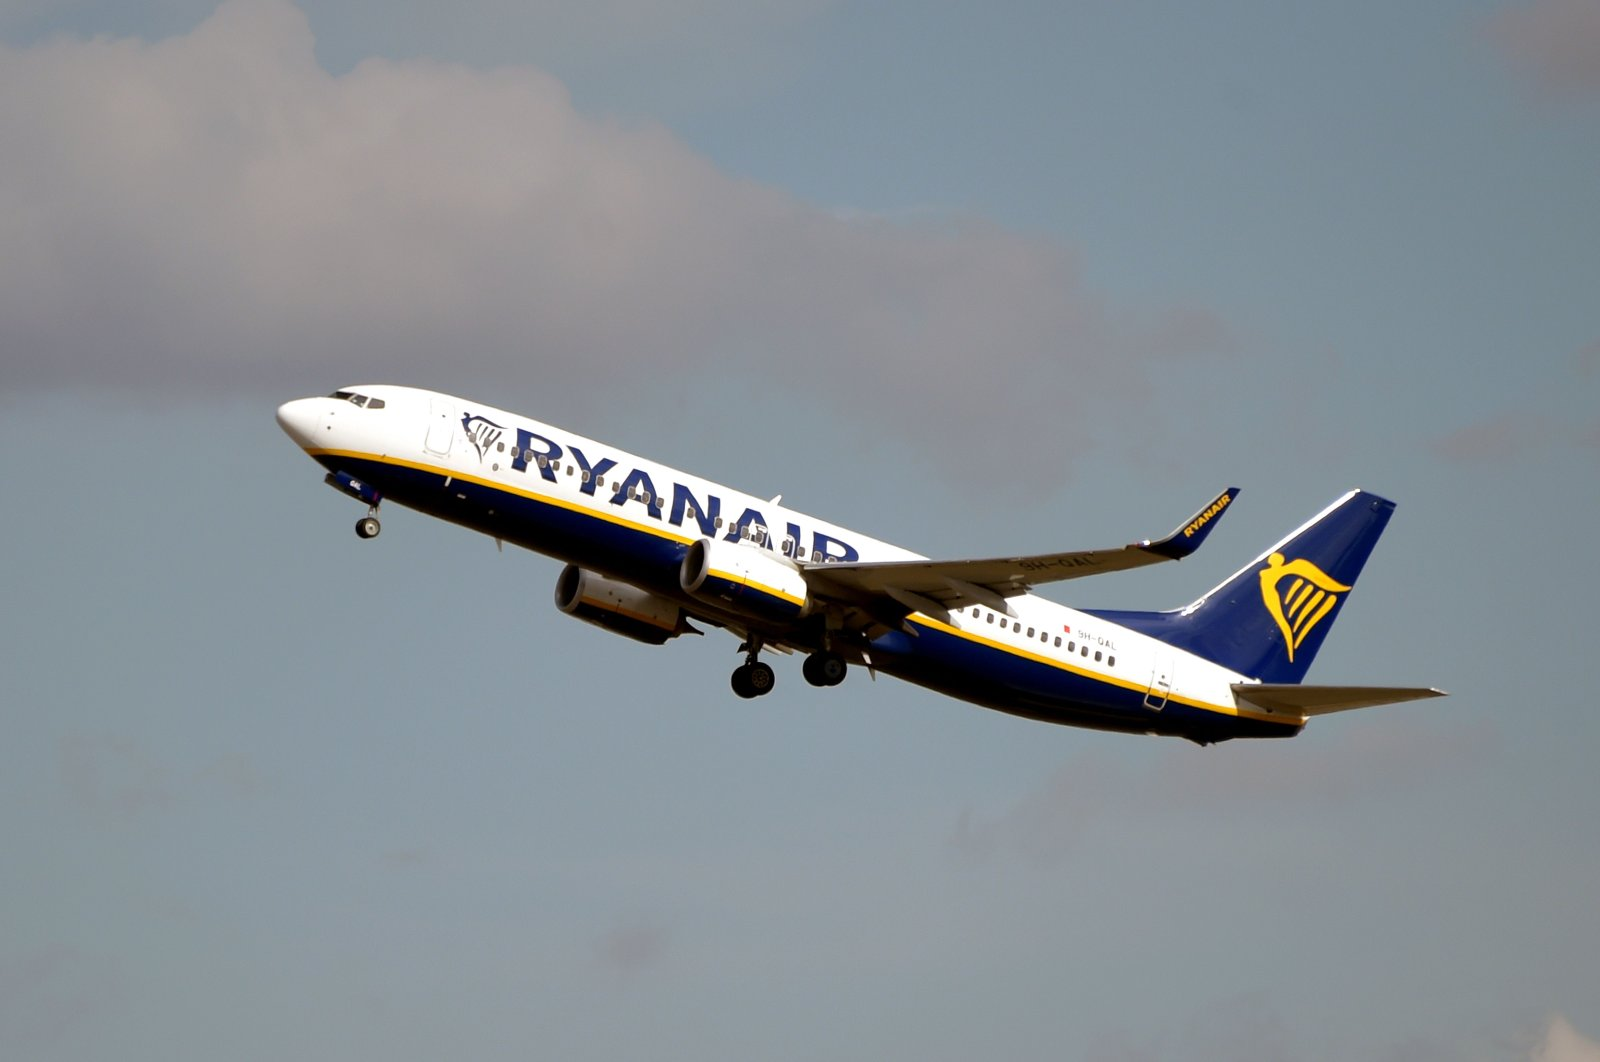 This file photo shows a Boeing 737 NG / Max belonging to Irish budget airline Ryanair after taking off from the Toulouse-Blagnac airport near Toulouse. (AFP Photo)